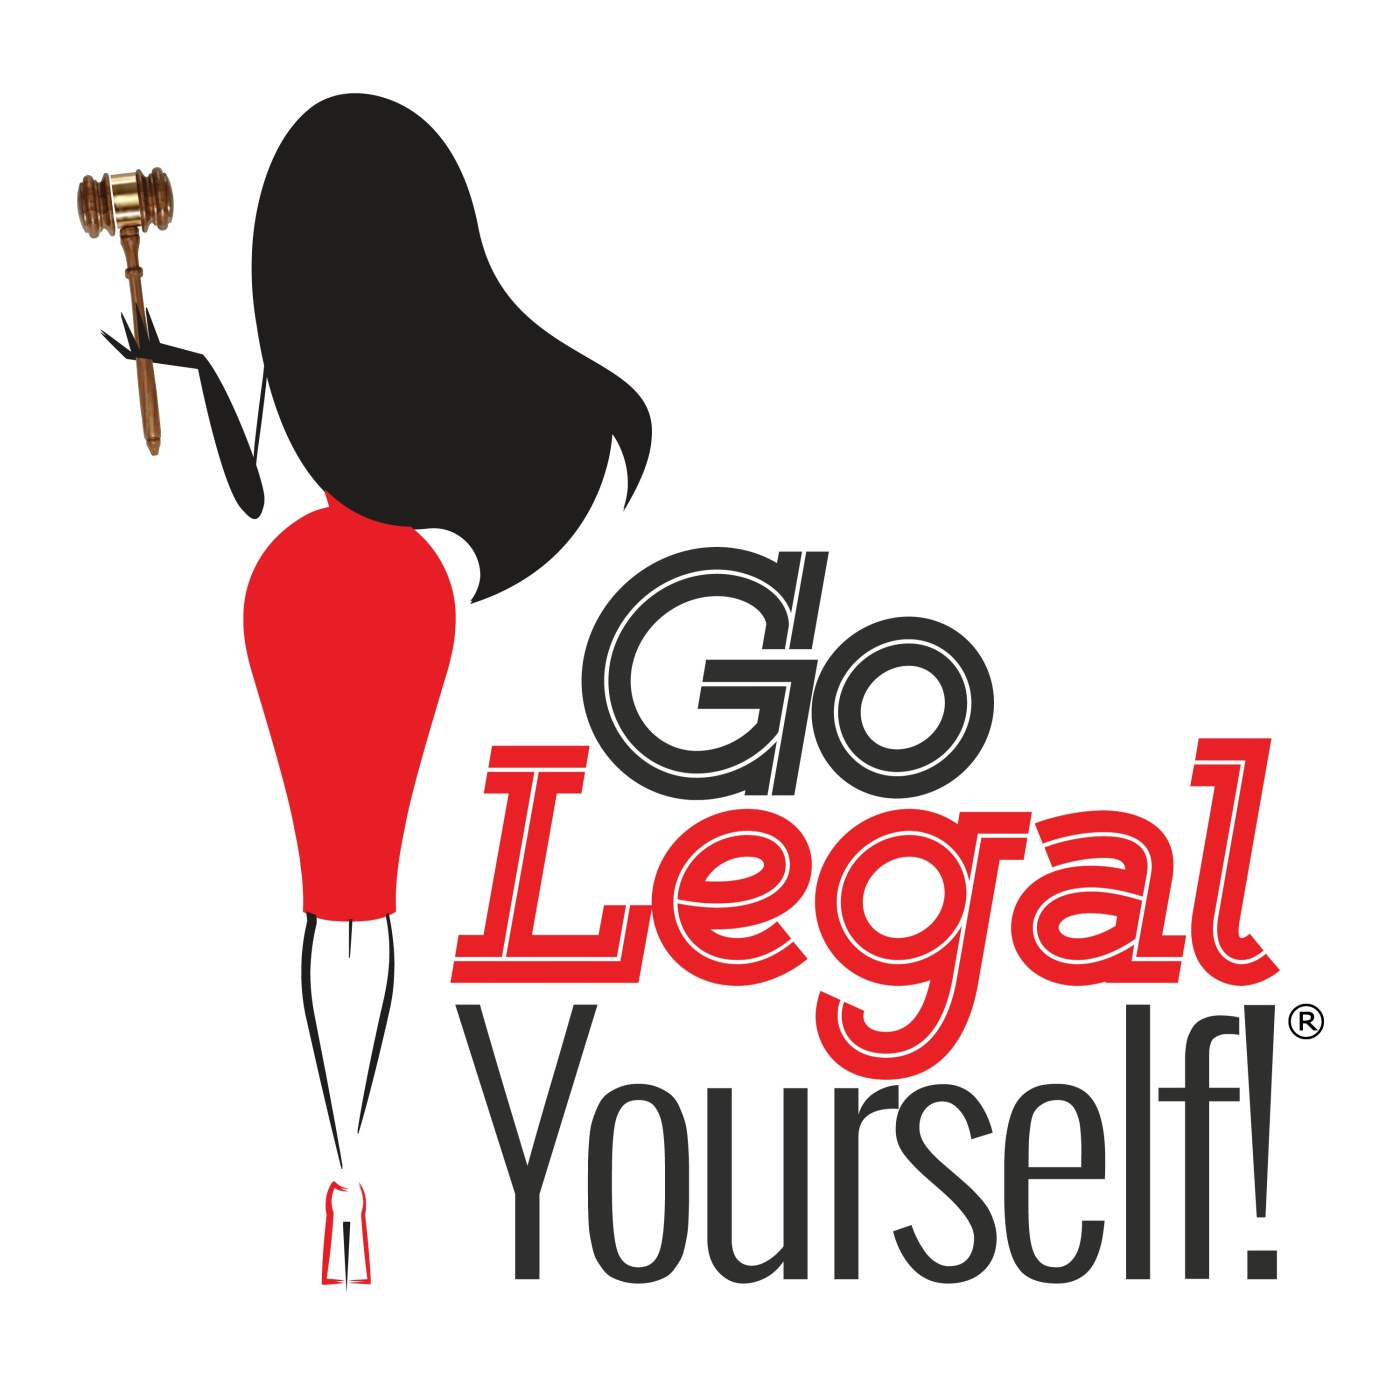 "Take control of your destiny with the Queen of Business Law! Join Kelly Bagla, Esq., author of ""Go Legal Yourself!"", as she cuts through the often complicated and overwhelming legal side of owning a business."